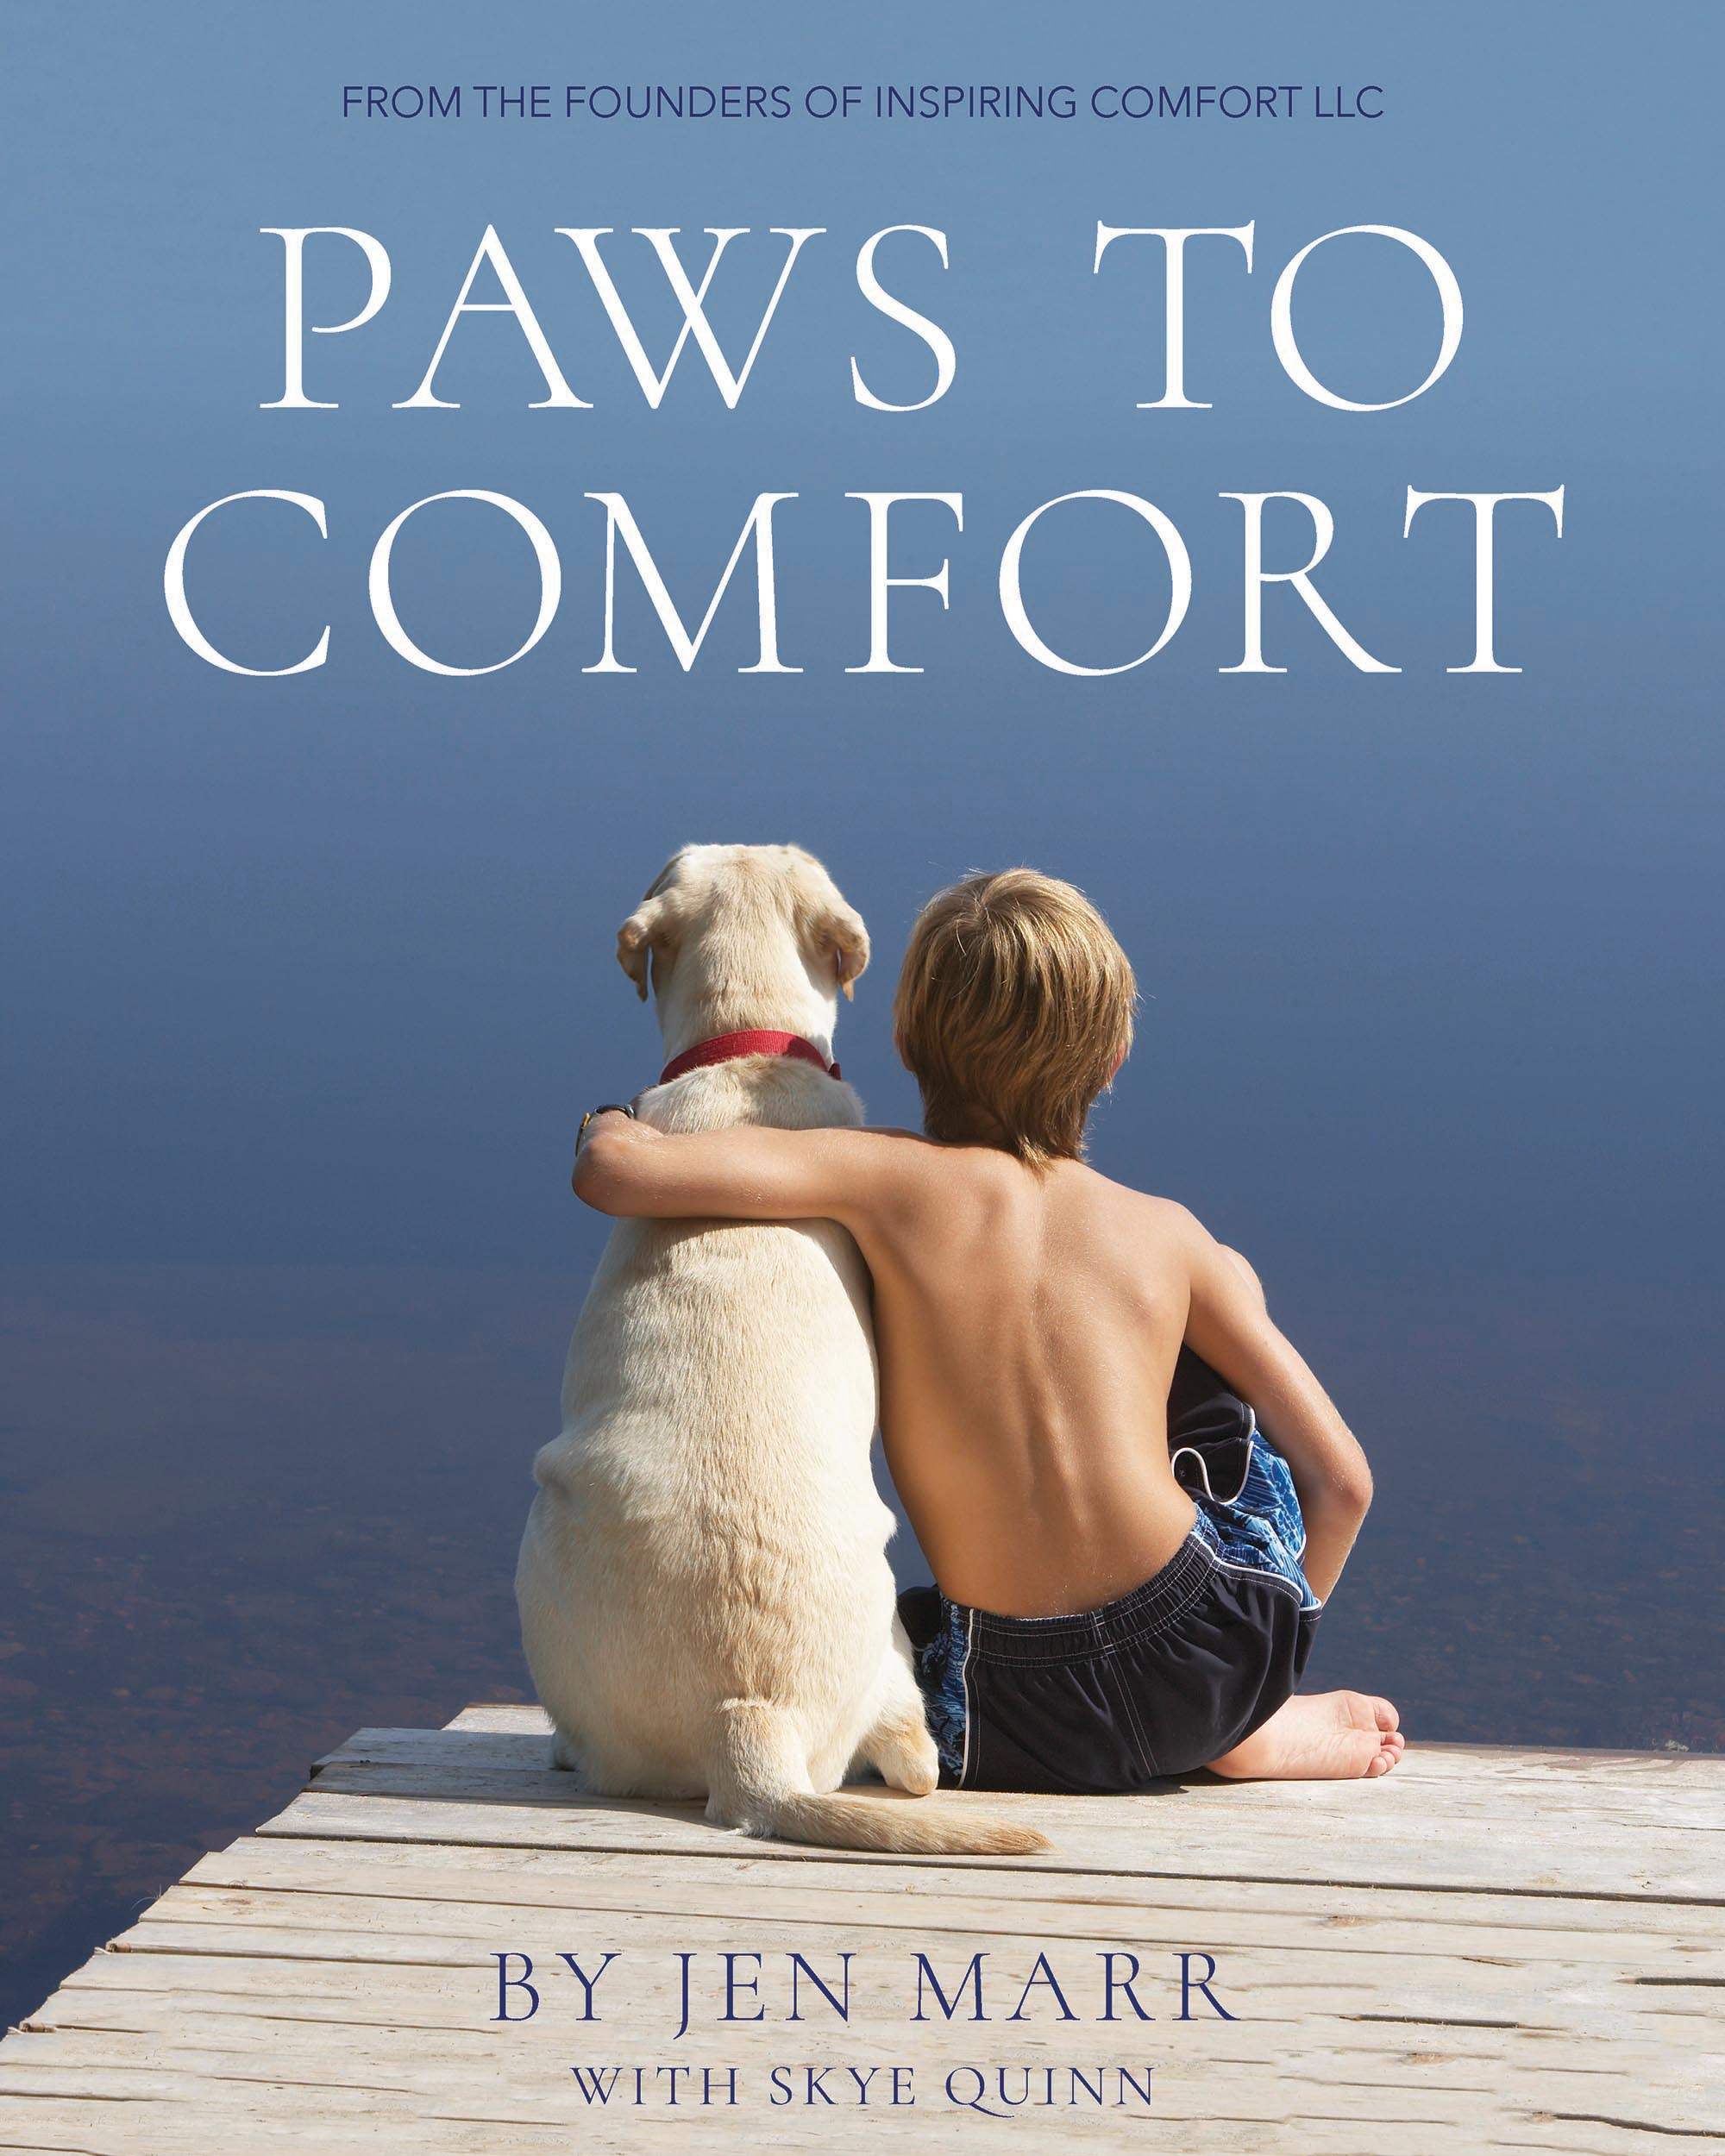 Paws to Comfort  by Jen Marr with Skye Quinn.  New Degree Press. Paperback & eBook. Publication date: November 2019.